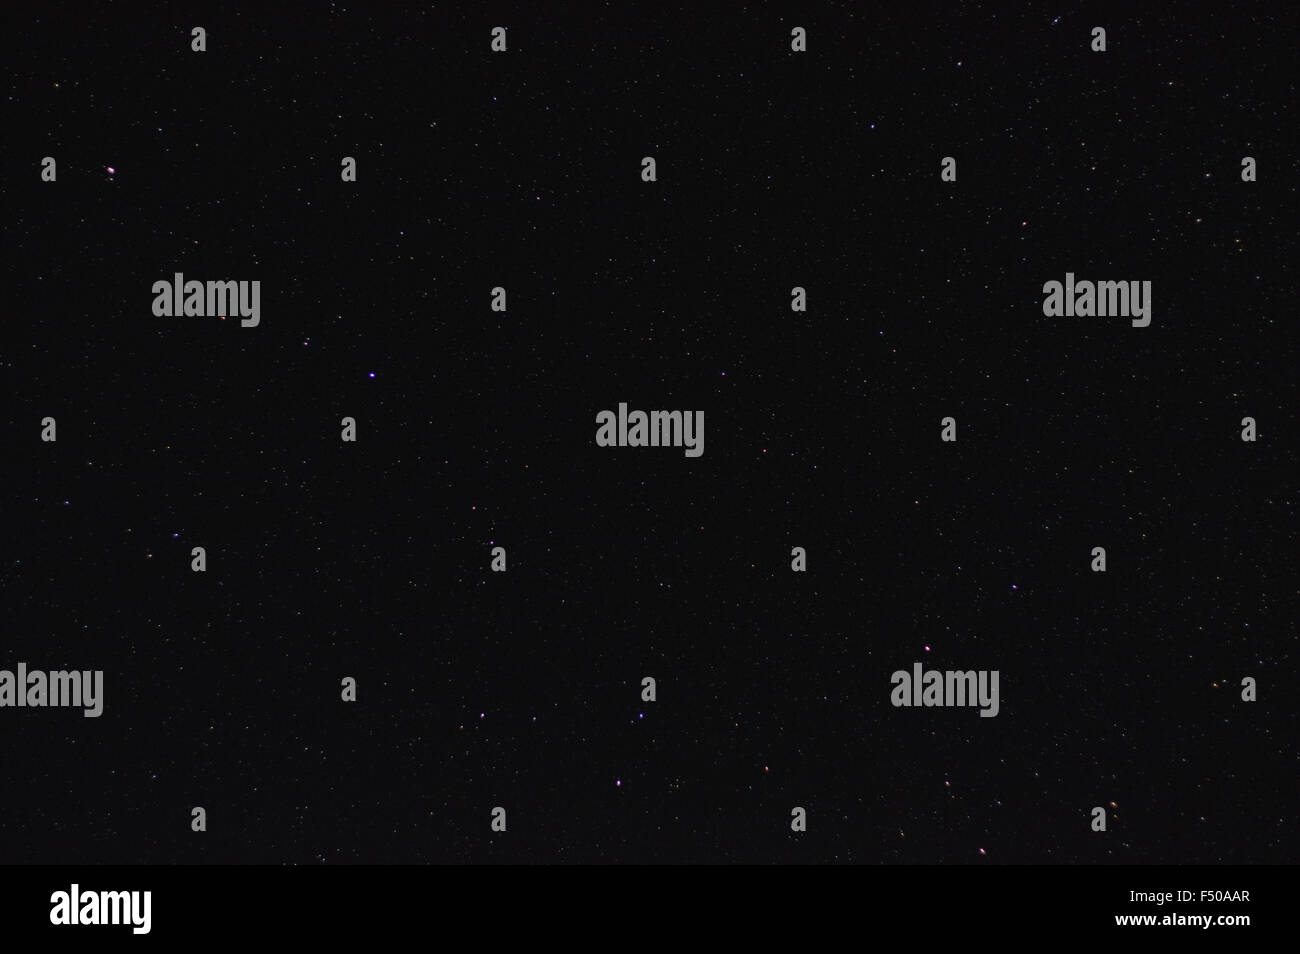 Night clear sky with many stars - Stock Image